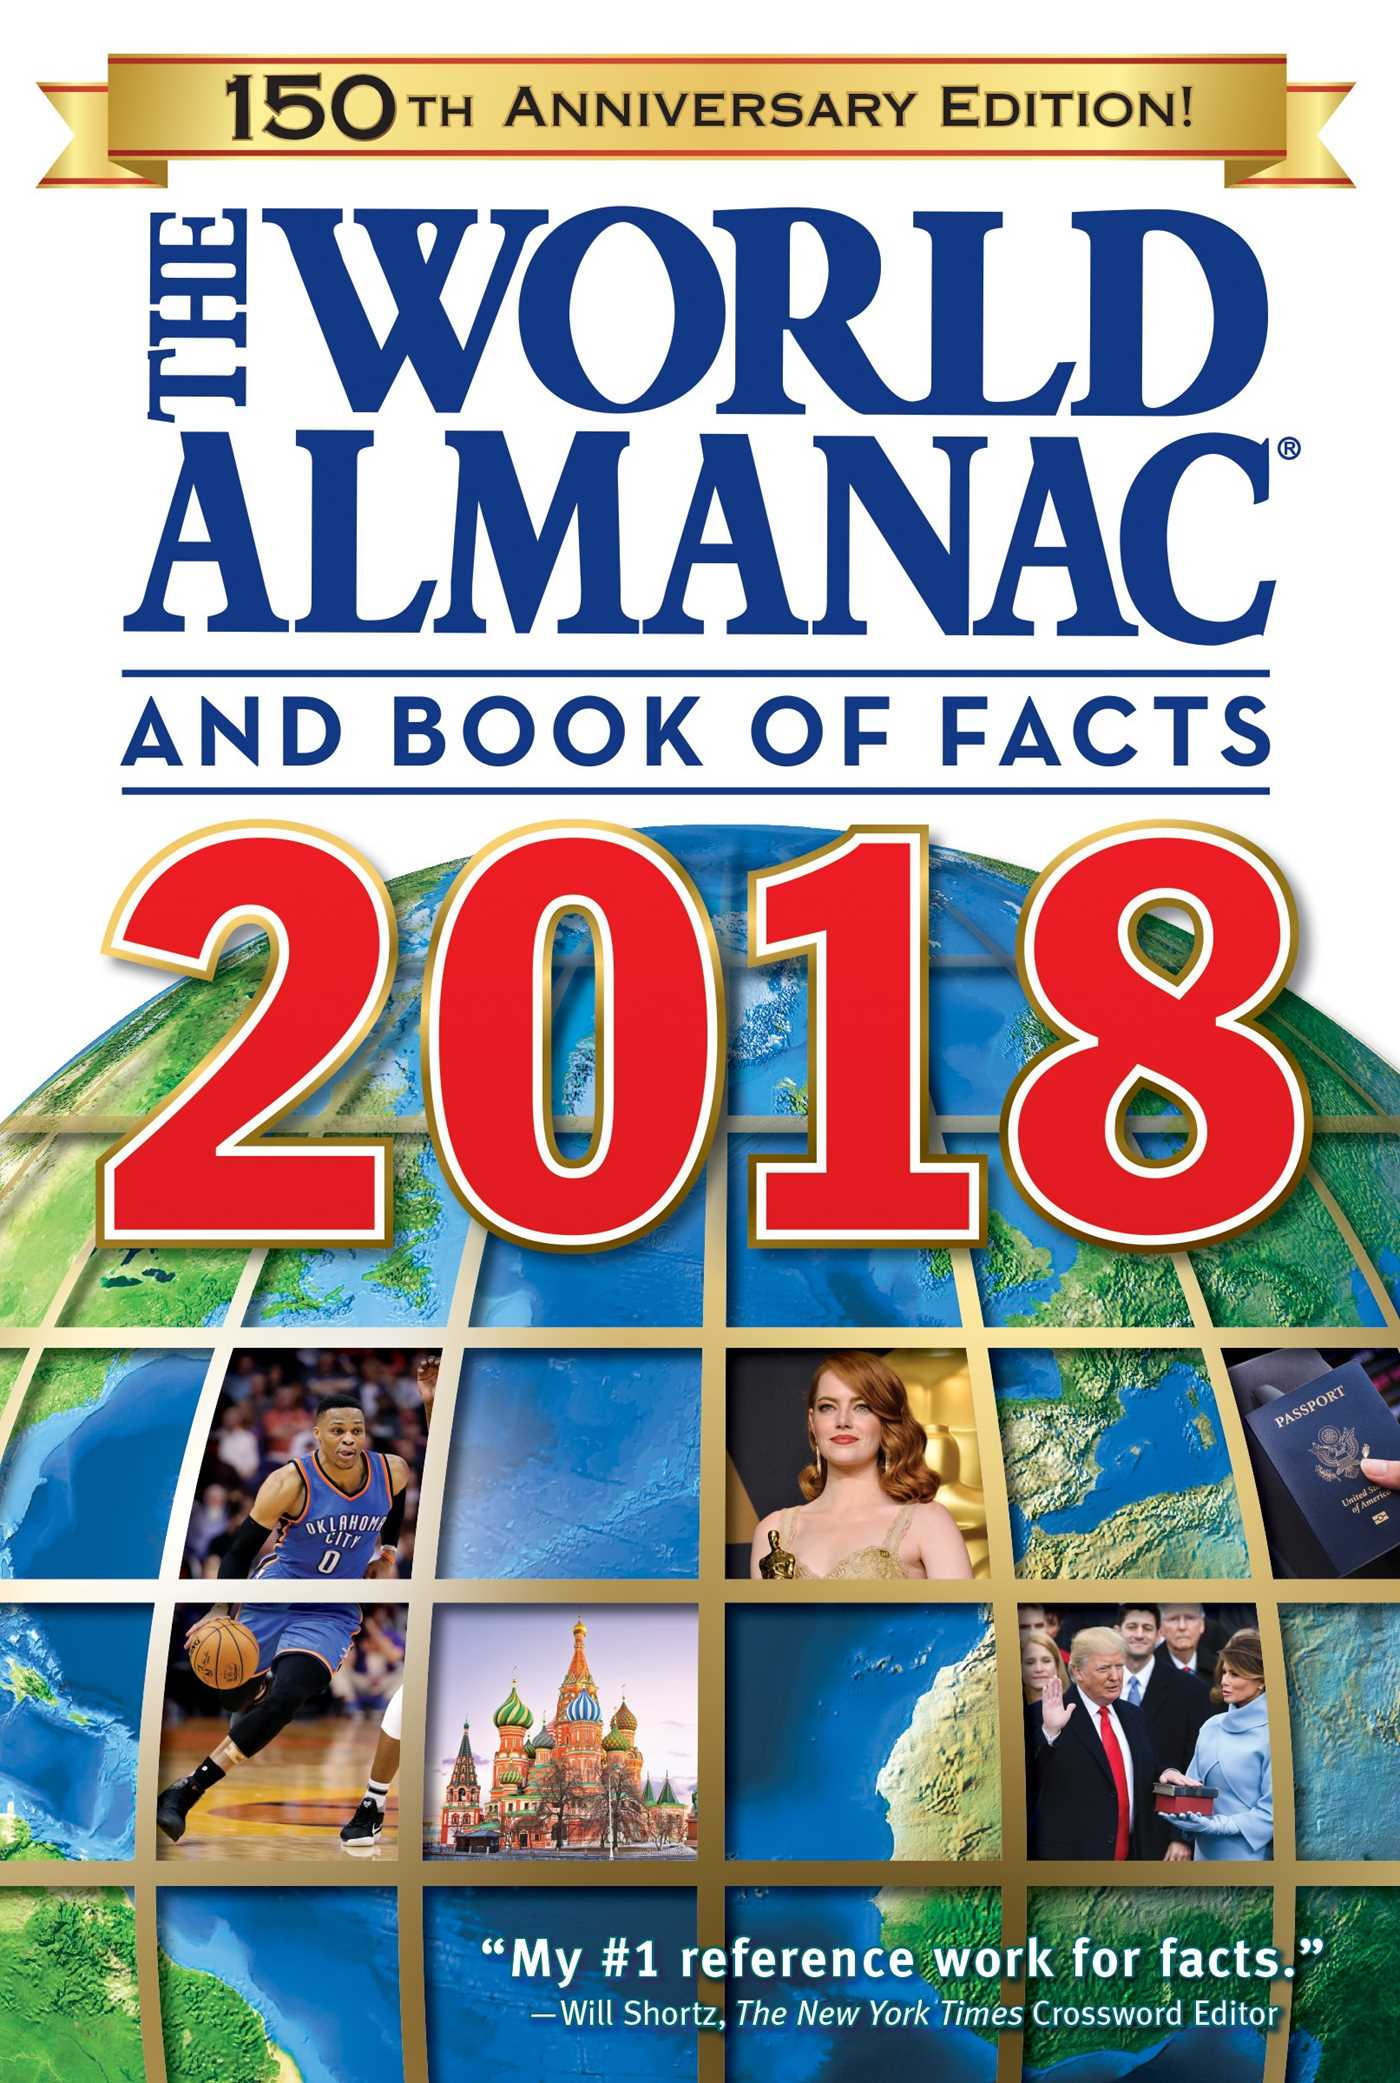 The world almanac and book of facts 2018 9781600572111 hr